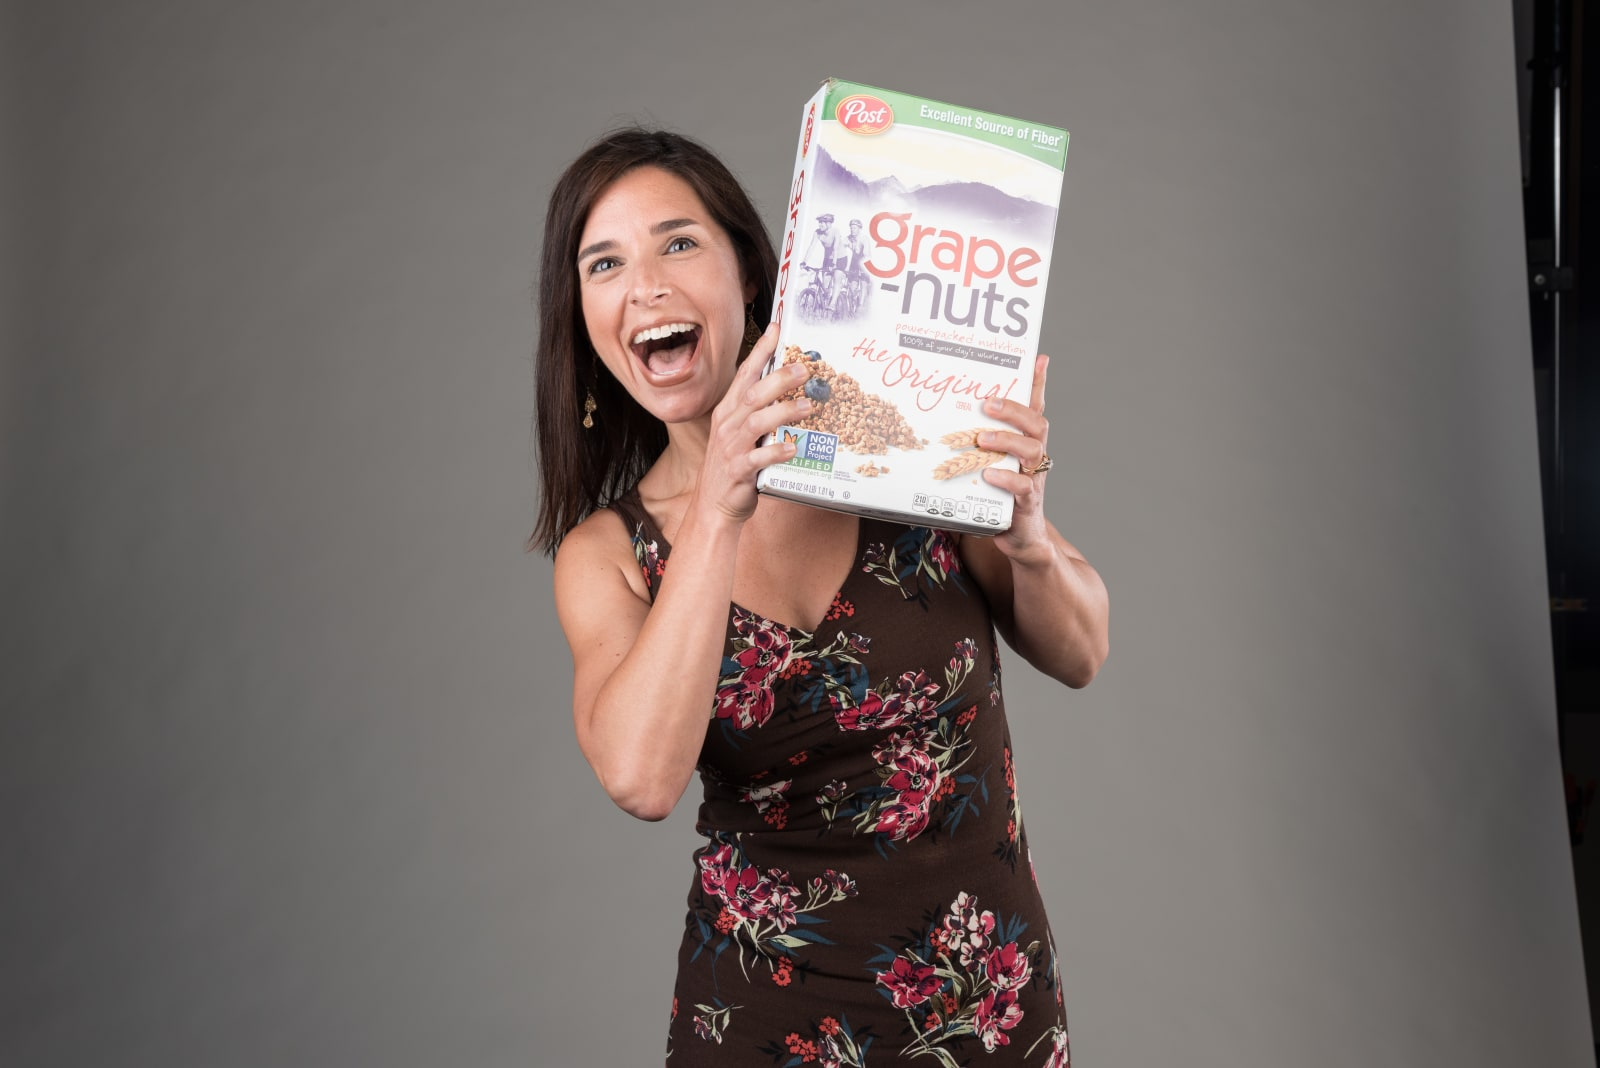 Molly Setzer with Grape Nuts